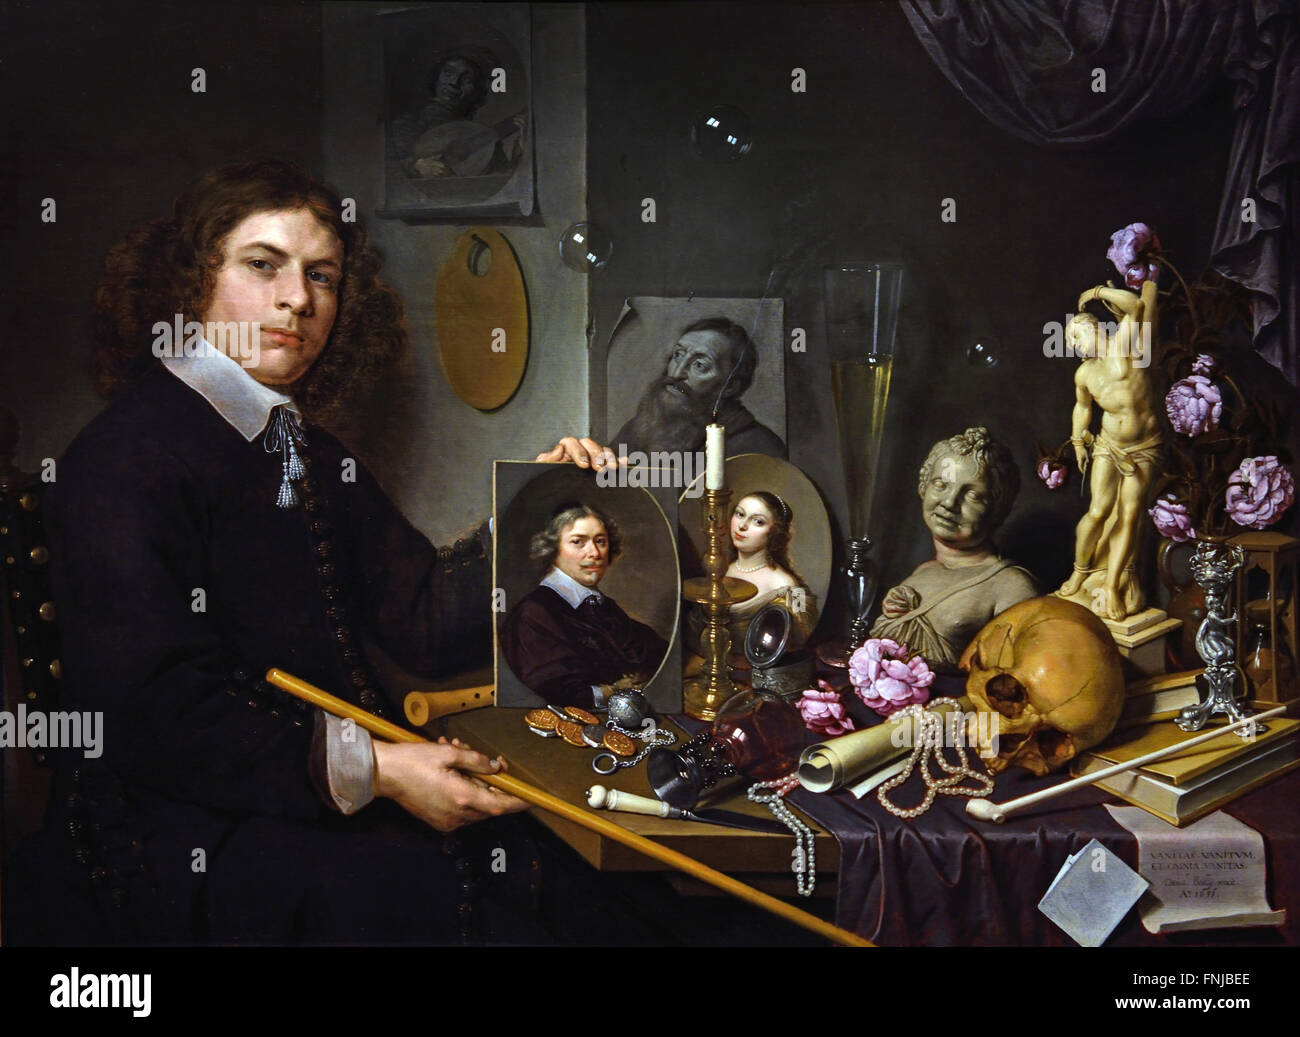 Vanitas still life with a self portrait 1651 of the young painter David Bailly  1584 - 1657 Dutch Netherlands ( - Stock Image